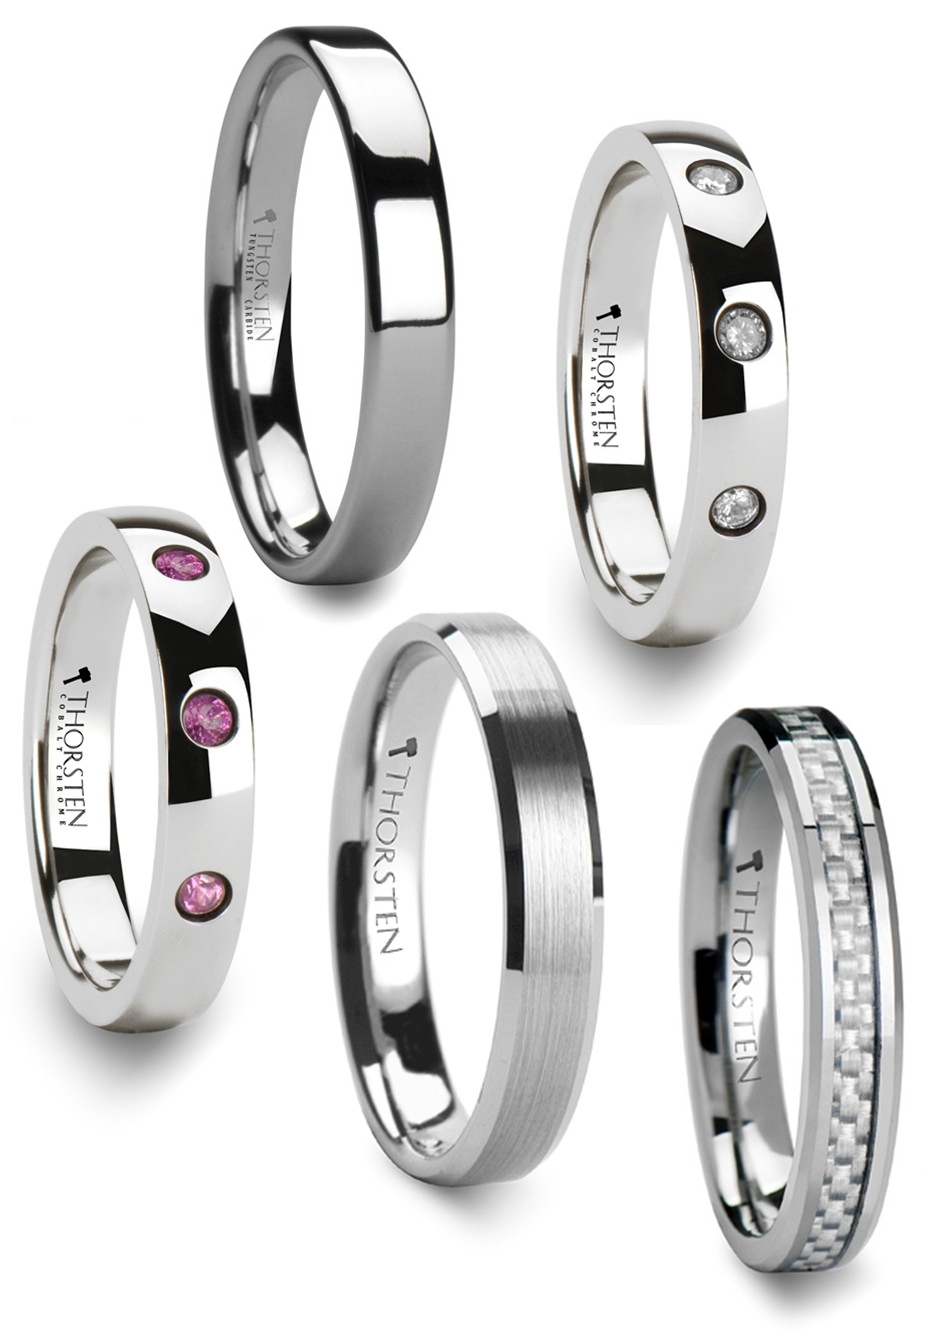 Tungsten Wedding Bands On Sale Now With Tungston Wedding Rings (View 13 of 15)